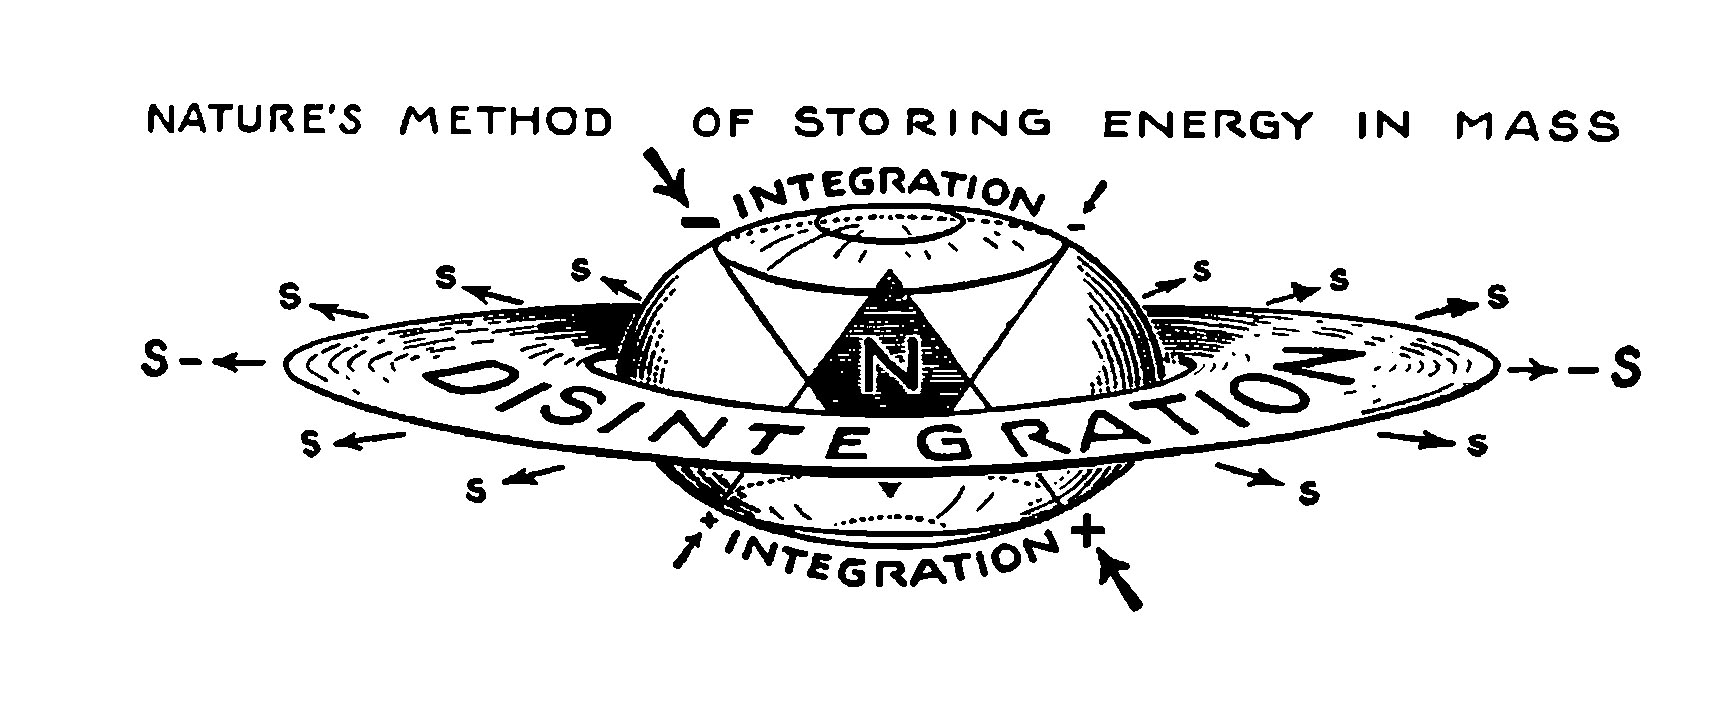 Nature's method of Storing Energy in Mass